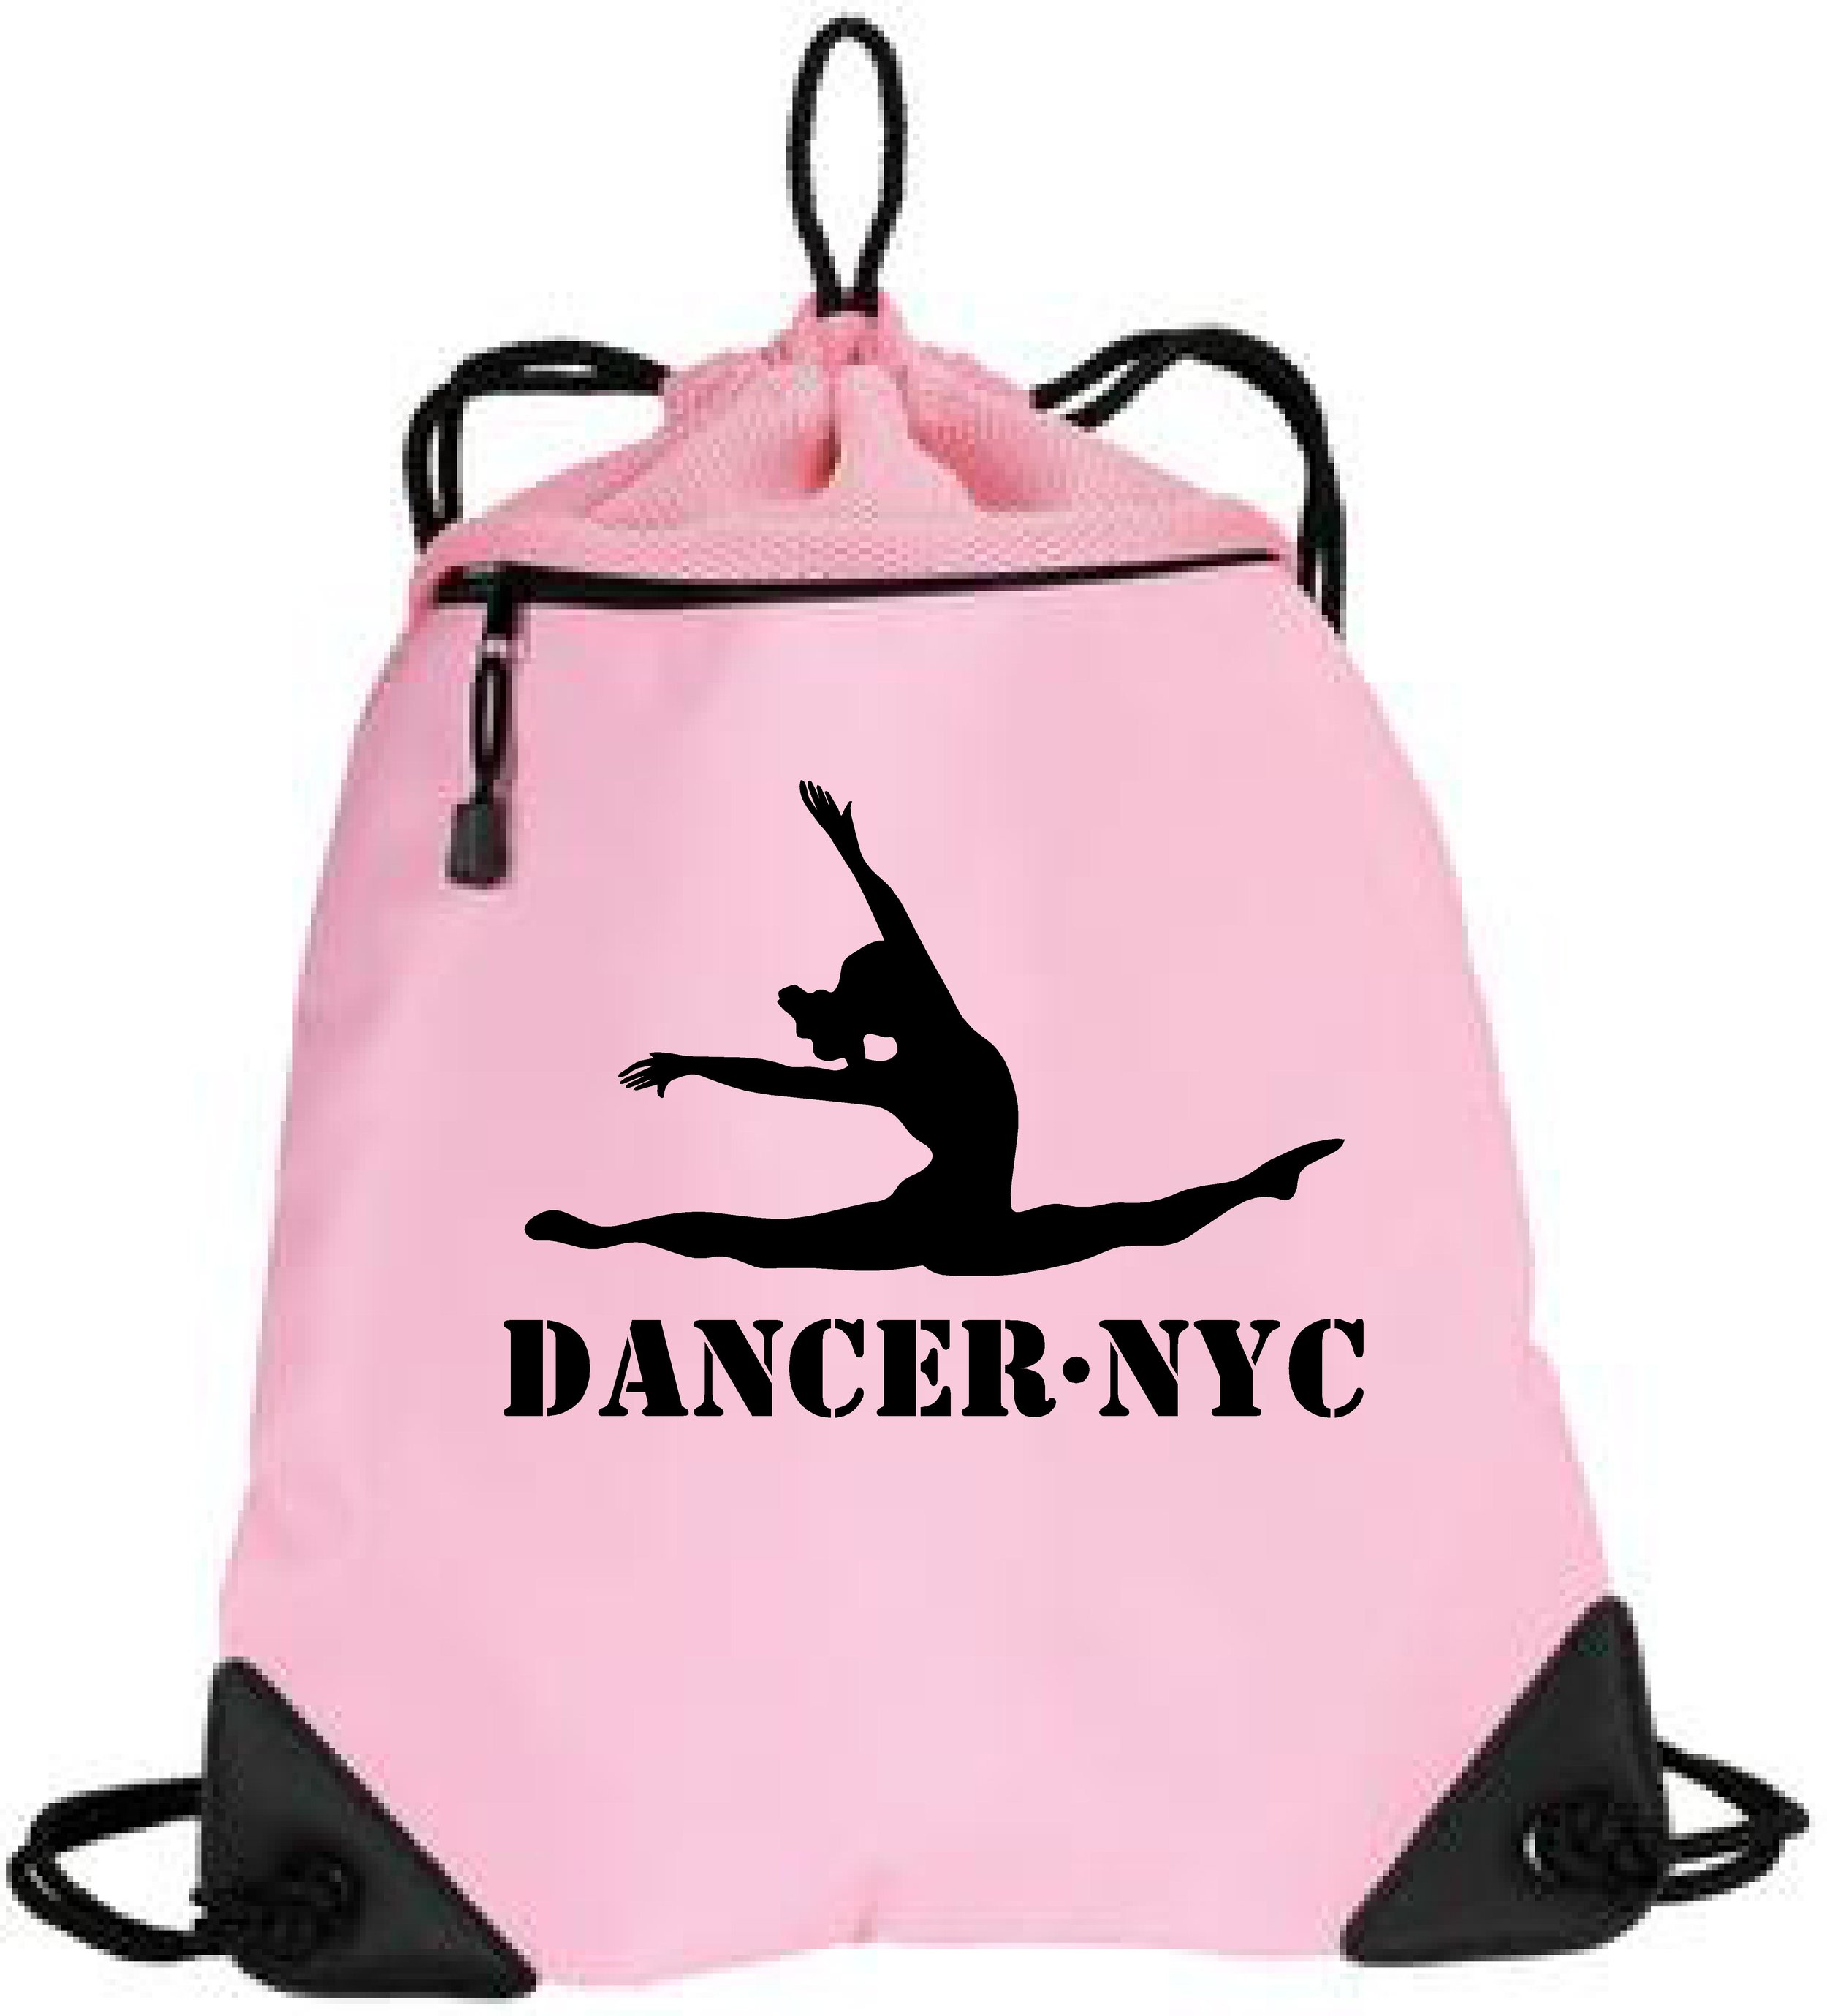 Dancer.NYC Drawstring Tote Bag 1- PINK - 100% polyester microfiber and air mesh